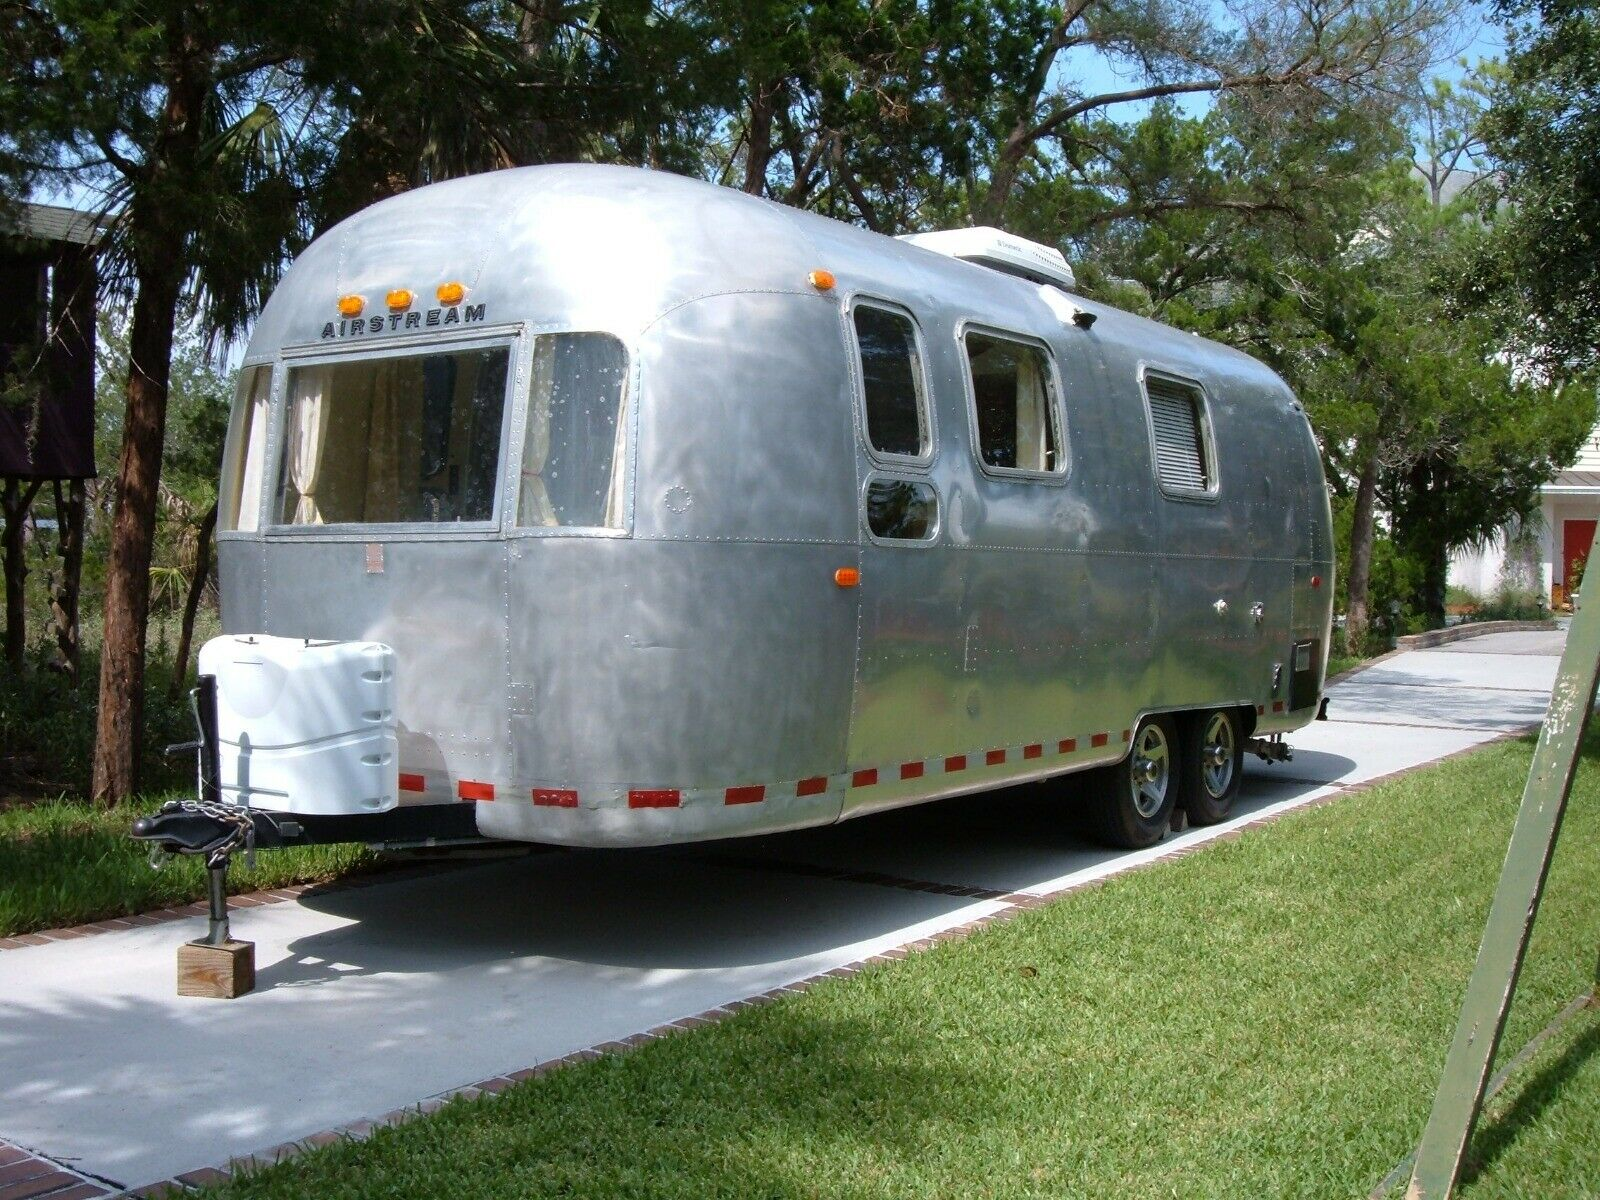 rebuilt 1969 Airstream Land Yacht camper for sale